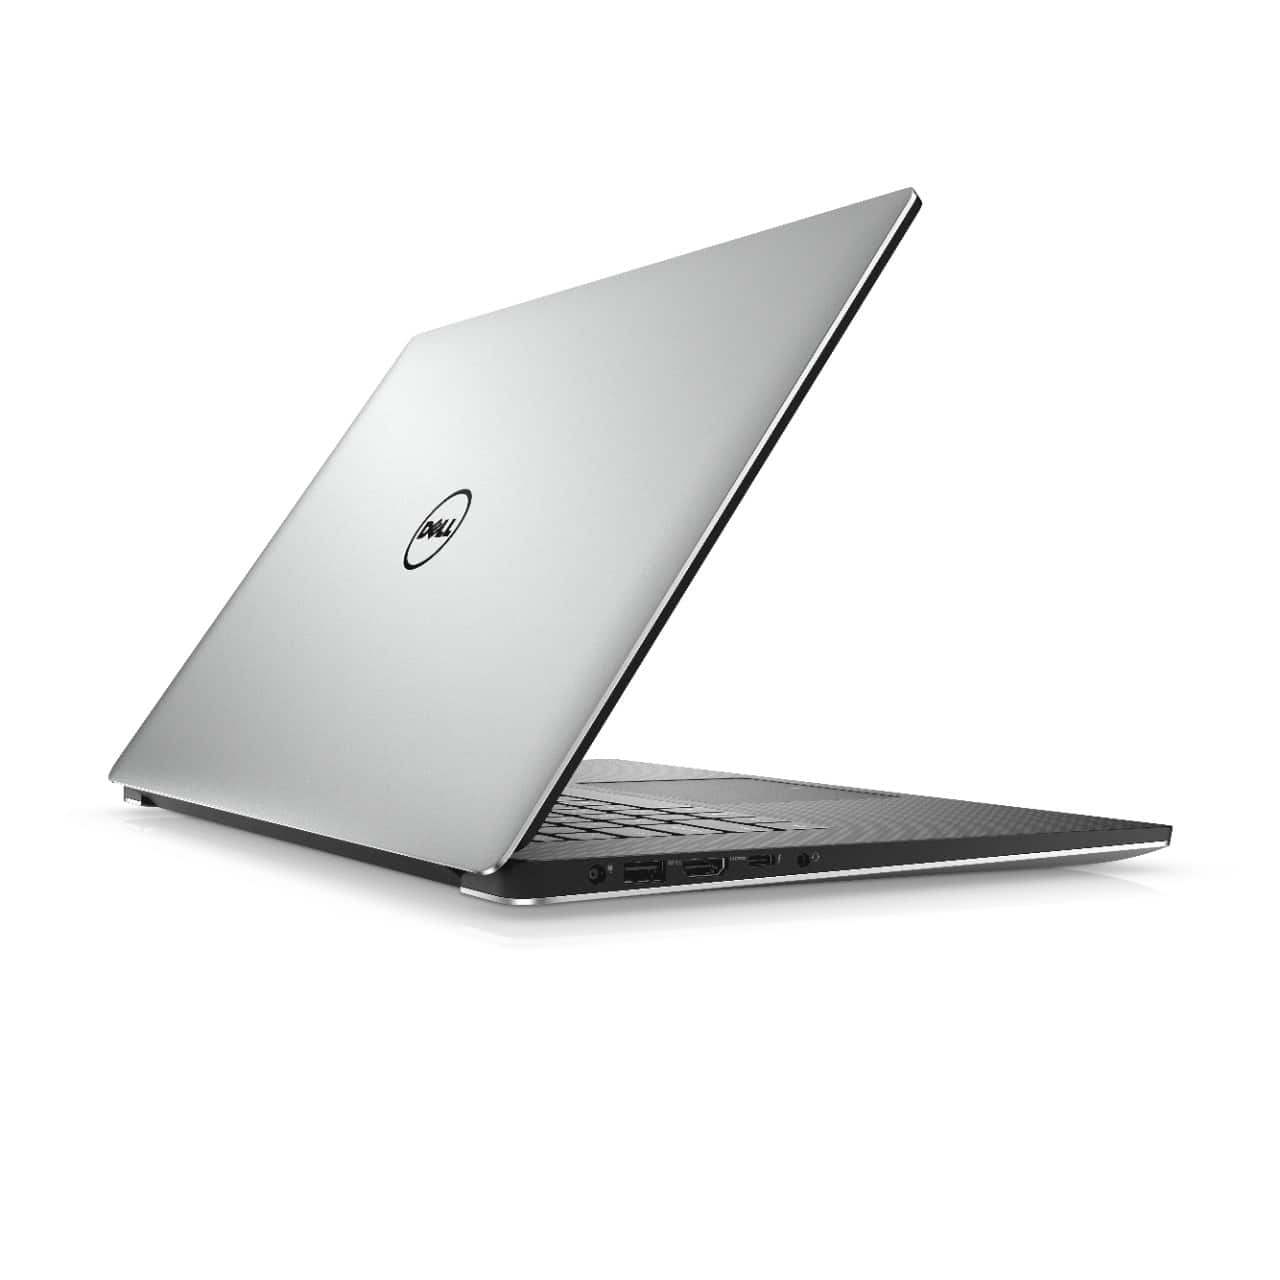 Dell Outlet - Dell XPS 9560 certified refurbished i5-7300HQ, 8GB RAM, 256GB NvME SSD, 4k Touch Display, GTX 1050 4GB for $700 + tax